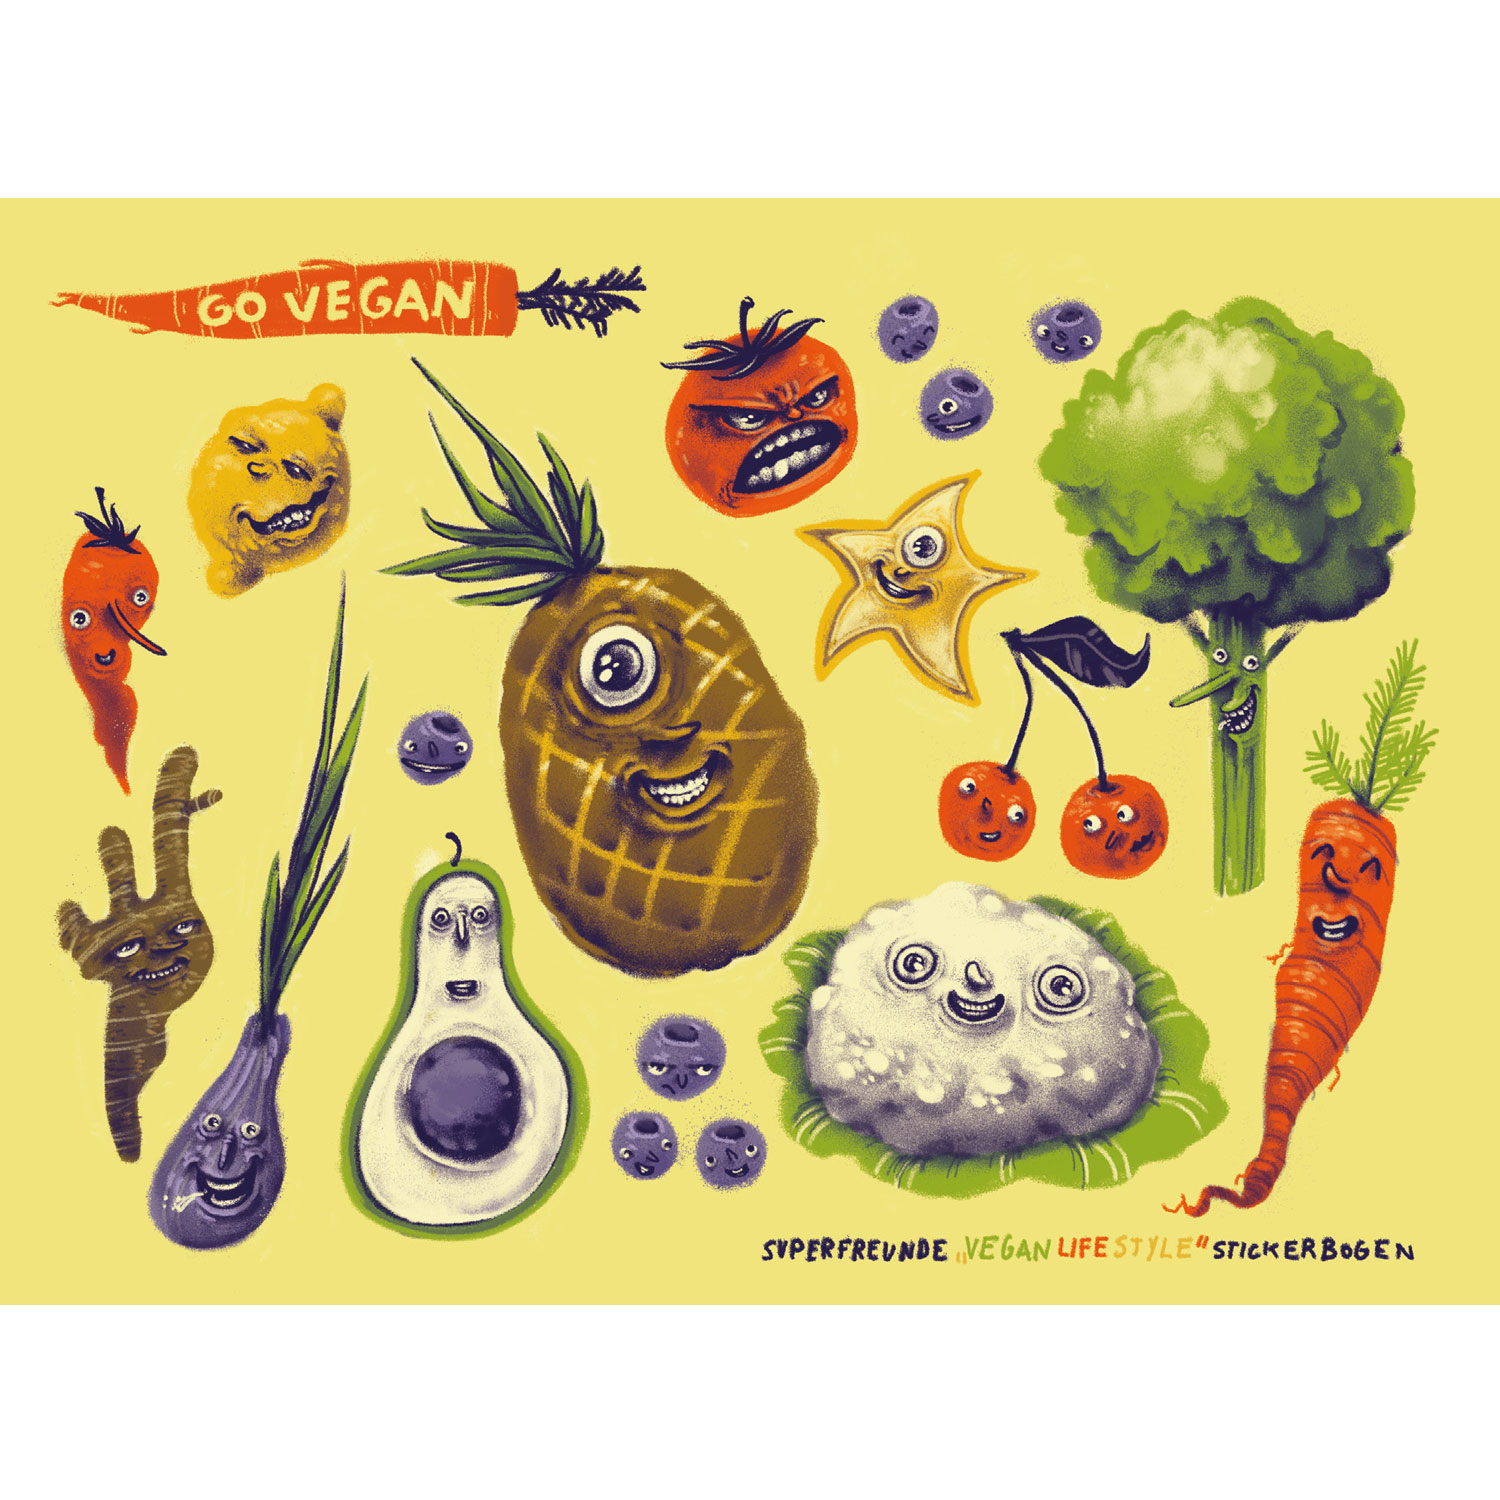 Vegan Lifestyle Stickerbogen